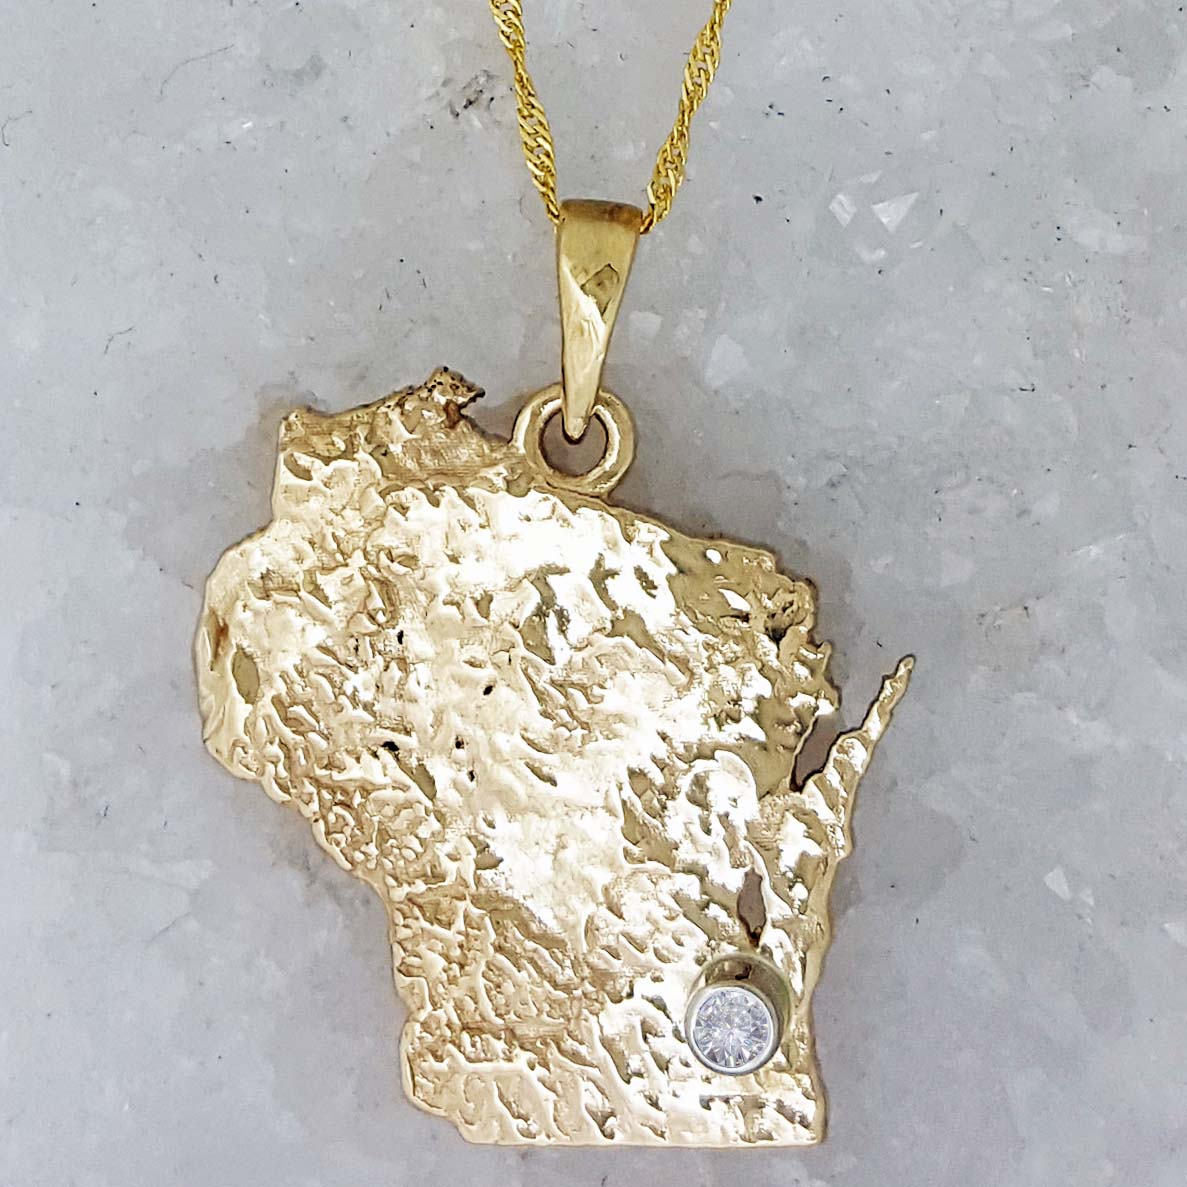 Custom gold state of wisconsin pendant bezel set with a 05ct custom gold state of wisconsin pendant bezel set with a 05ct diamond at your special location aloadofball Image collections